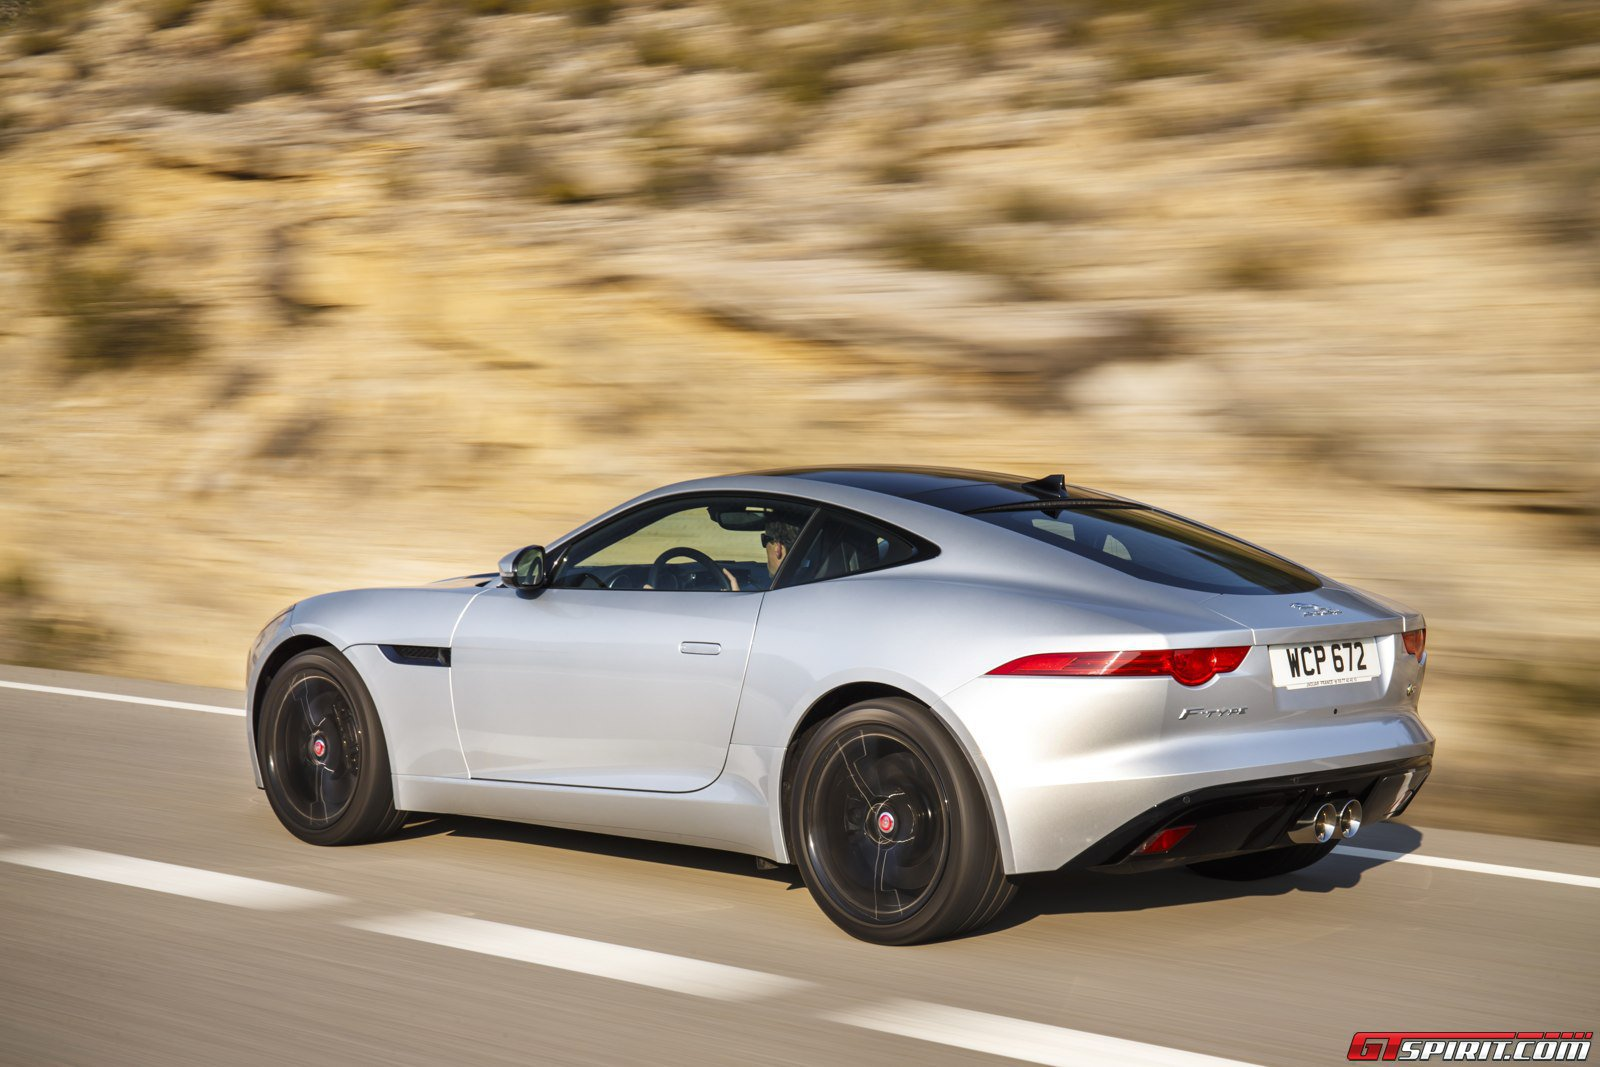 2014 jaguar f type v6s coupe vs f type r coupe review. Black Bedroom Furniture Sets. Home Design Ideas